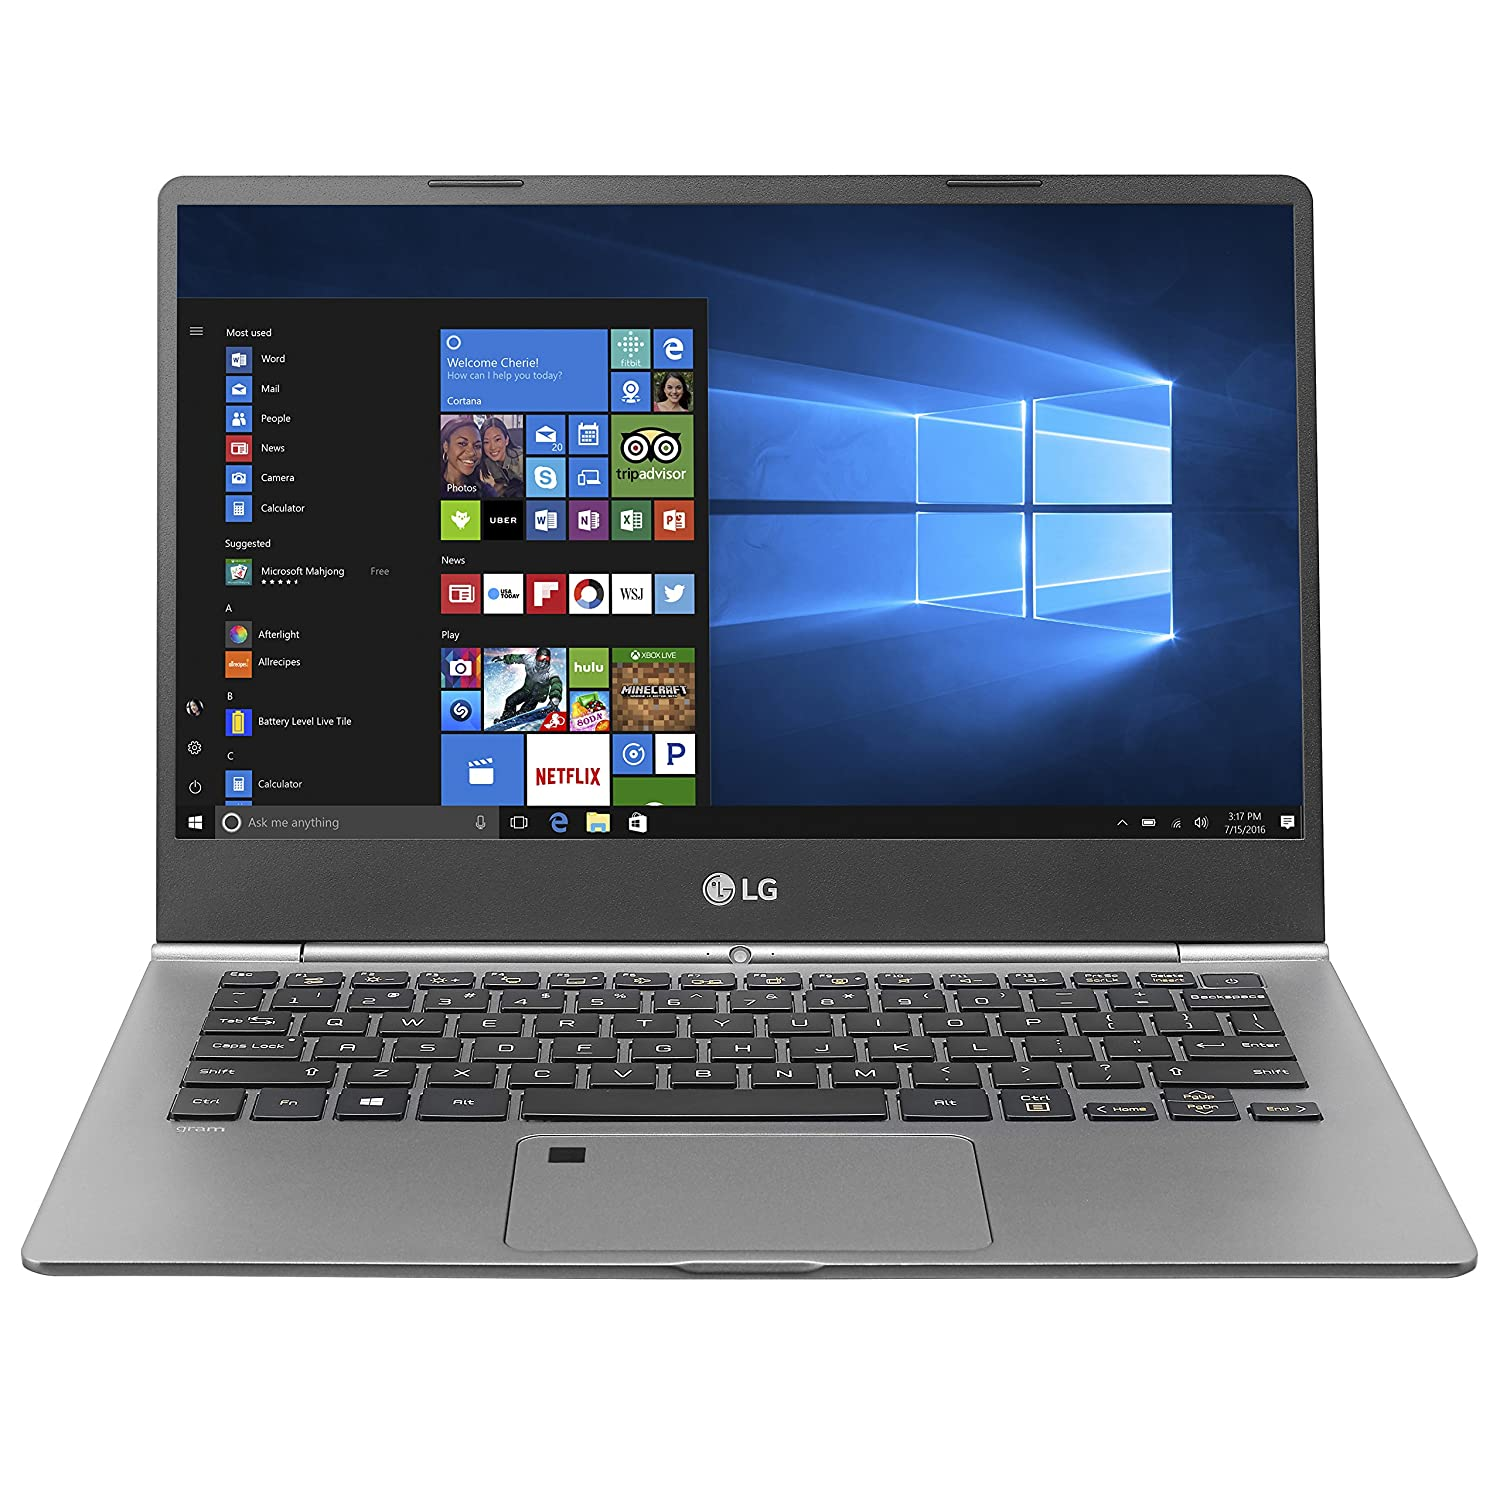 LG Gram 13 Laptop Black Friday Deal 2019